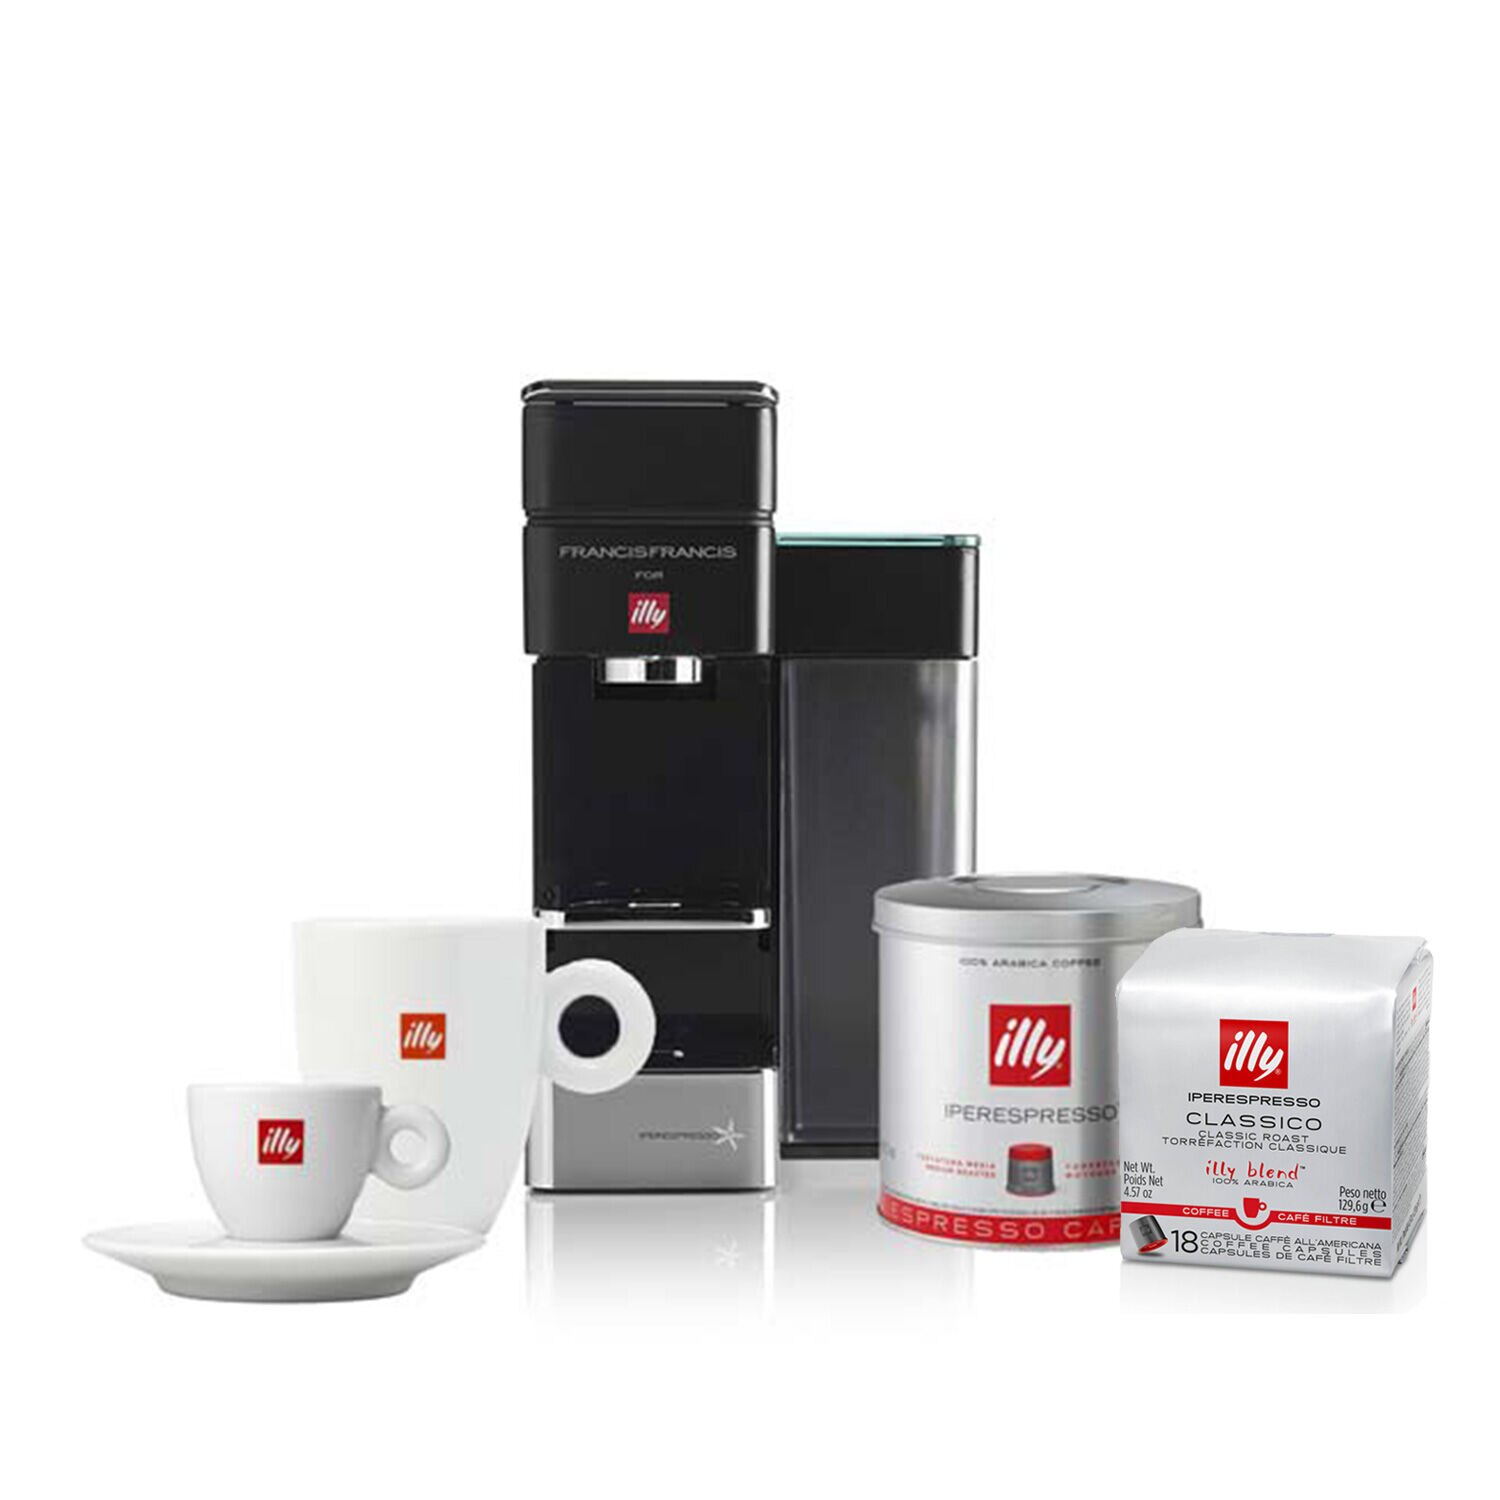 illy Y5 milk & espresso bluetooth, amazon dash replenishment enabled bundle front view.